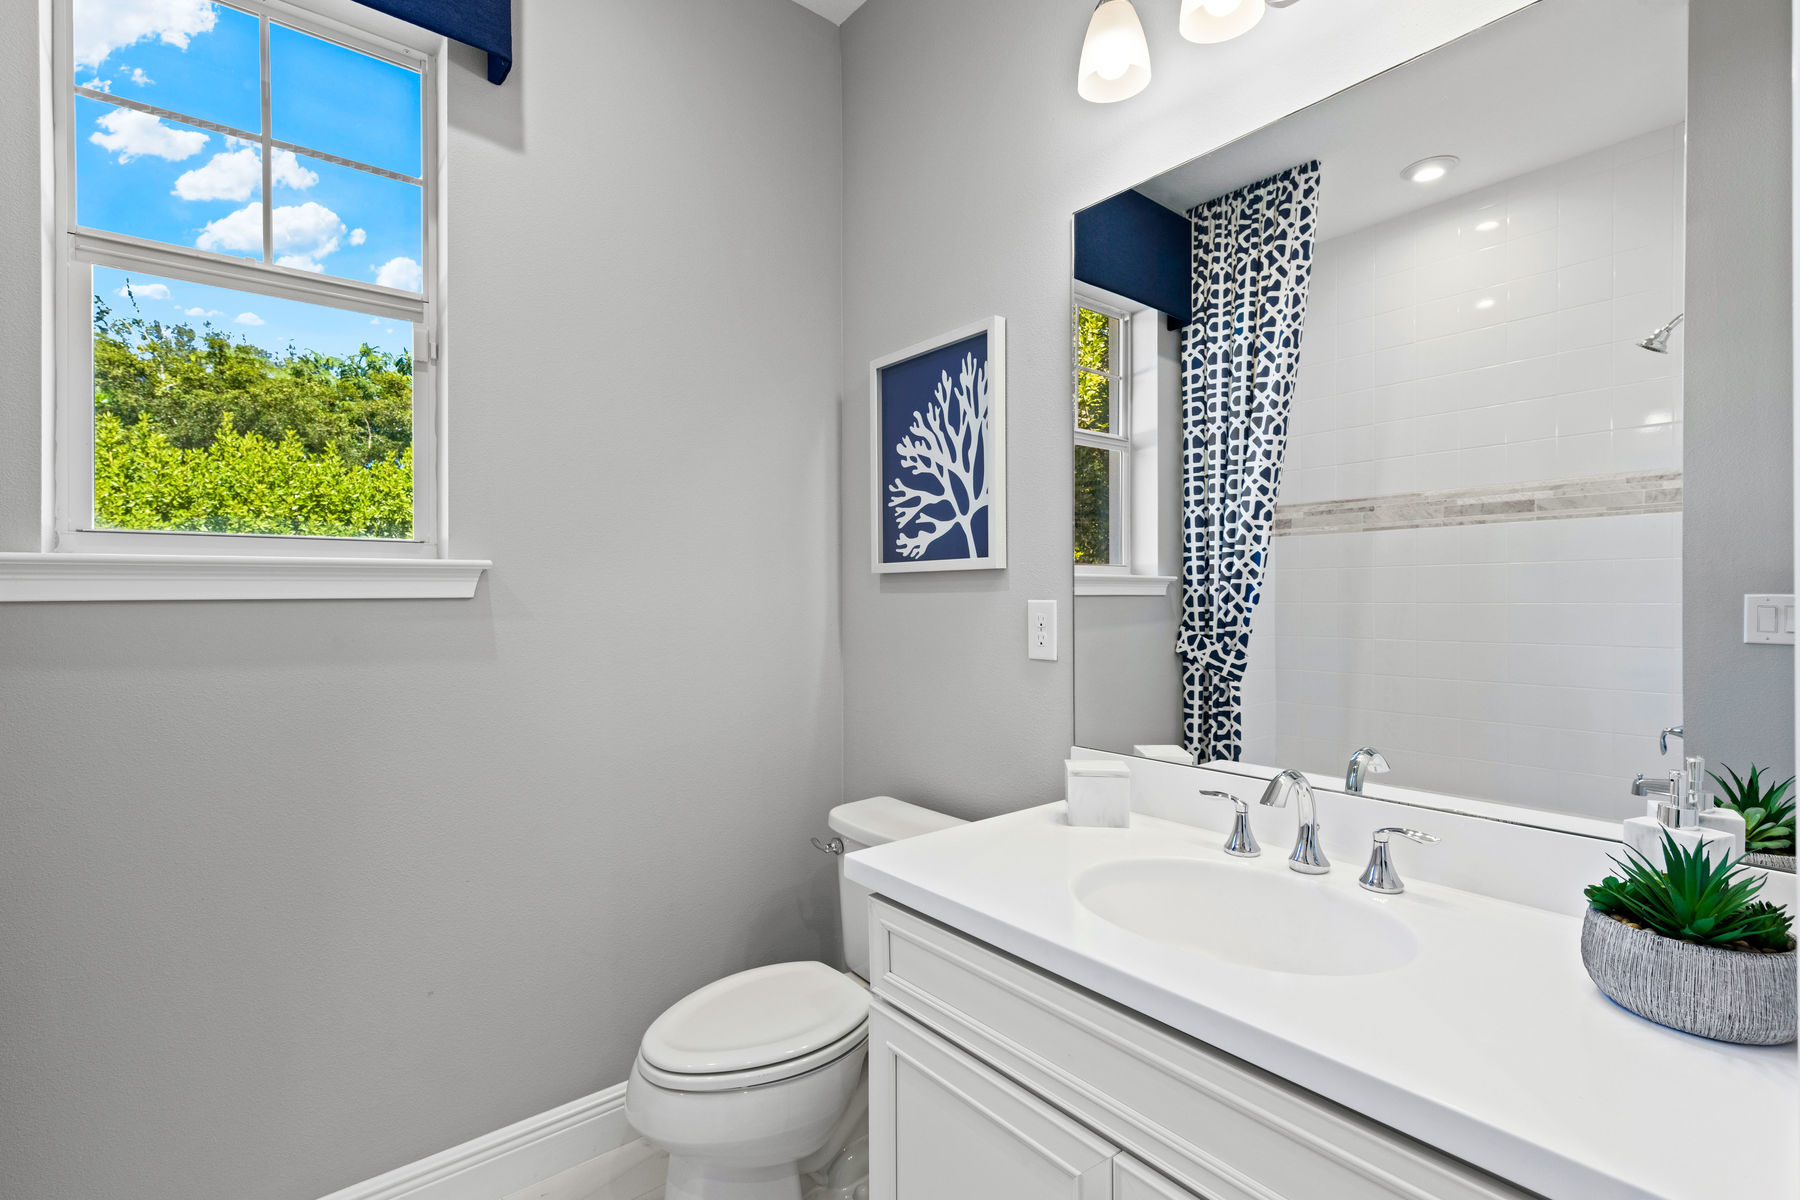 Captiva II Plan Bath at Arboretum in Naples Florida by Mattamy Homes